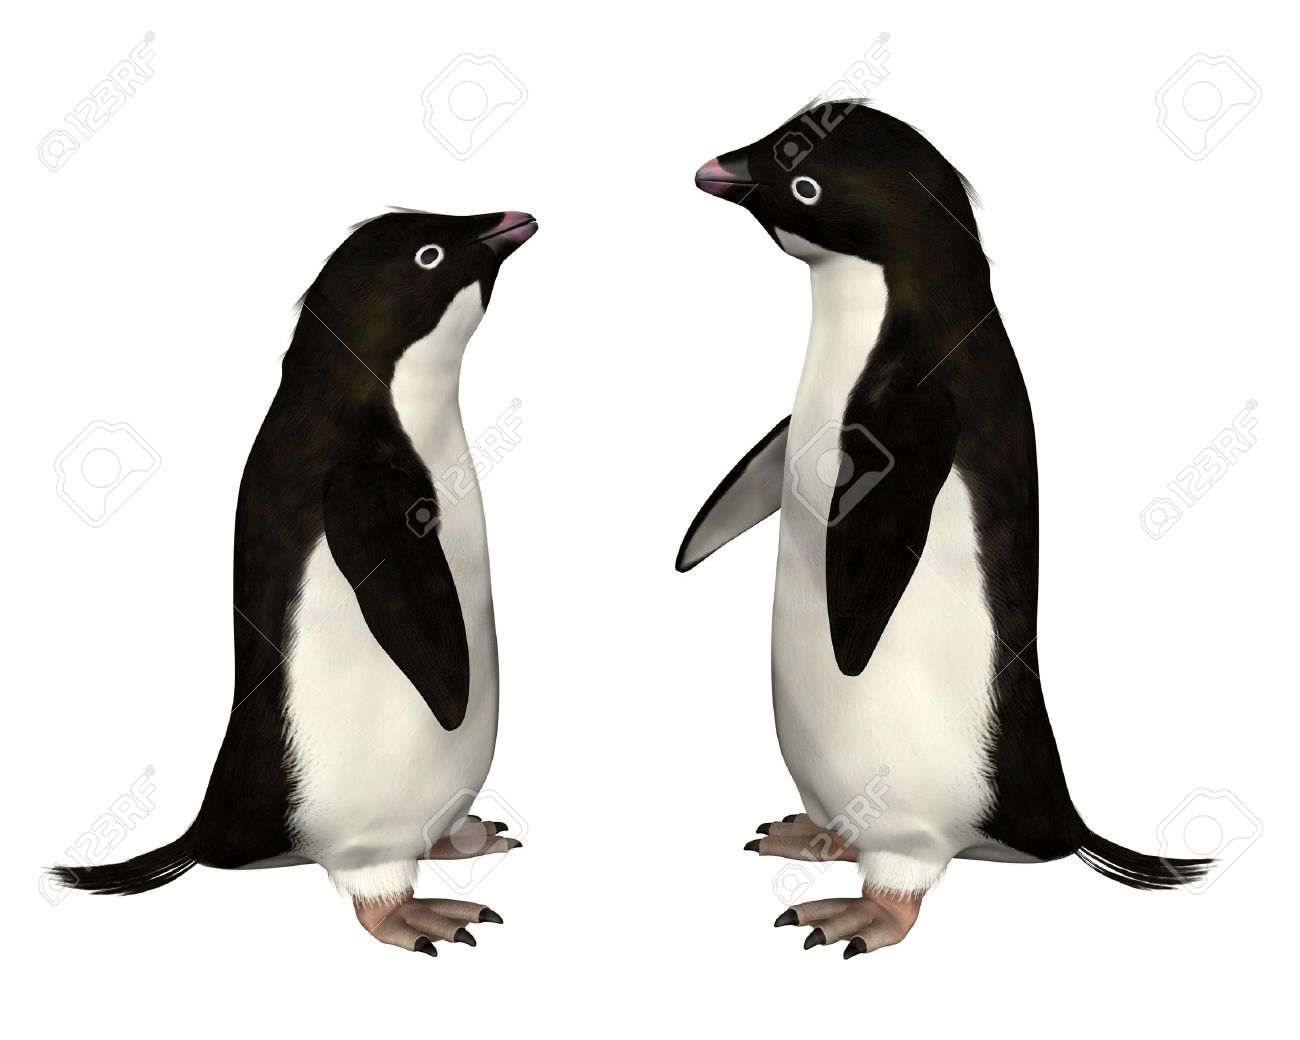 Adelie Penguin clipart #13, Download drawings